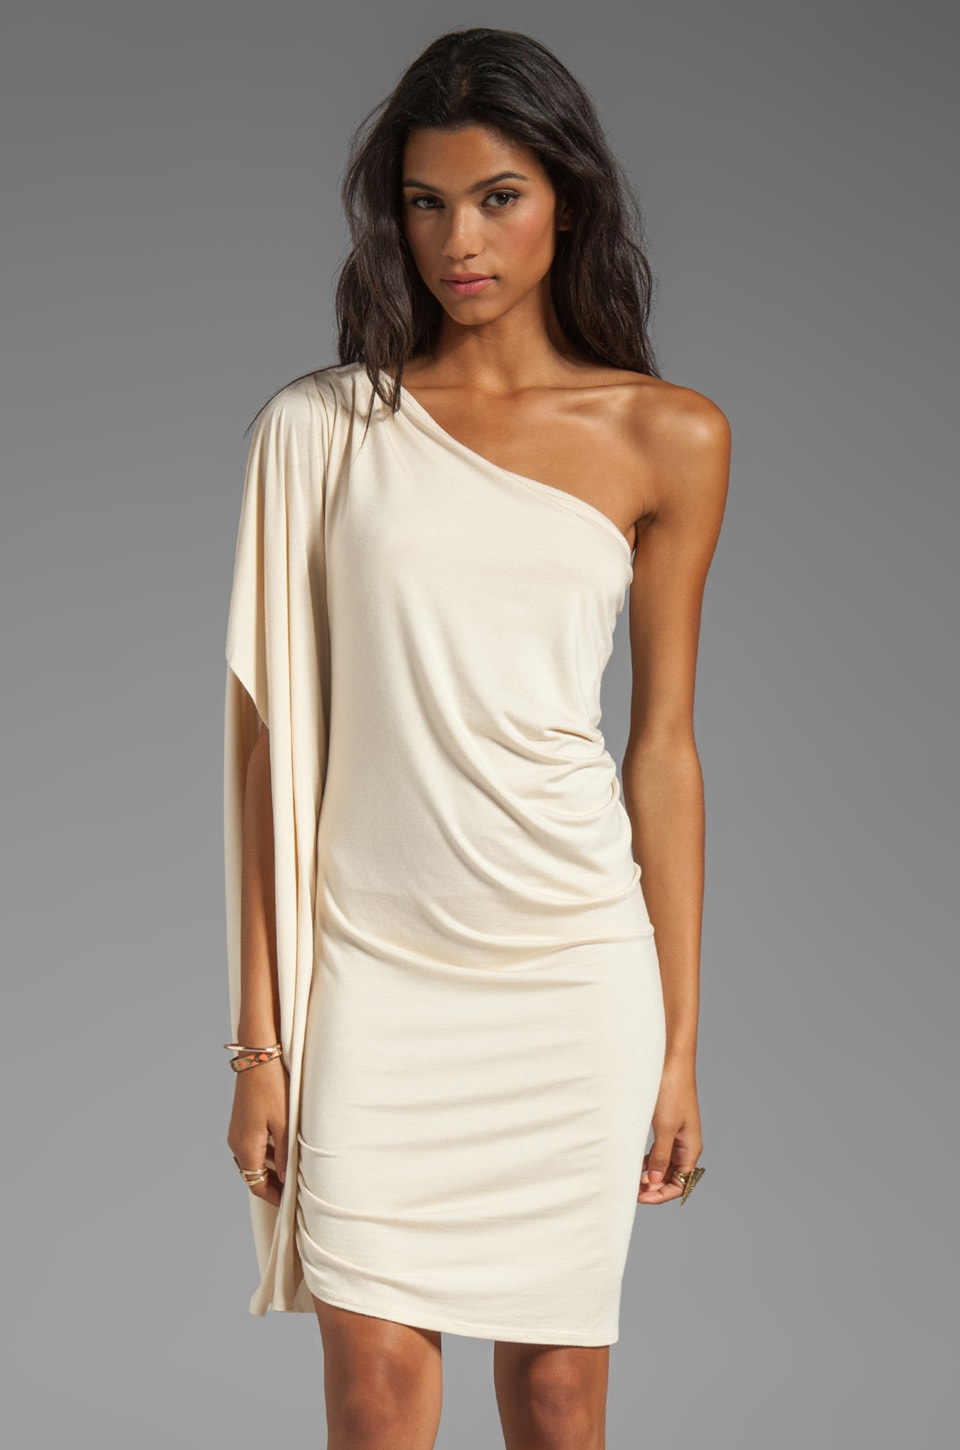 Rachel Pally Reed Dress in Cream